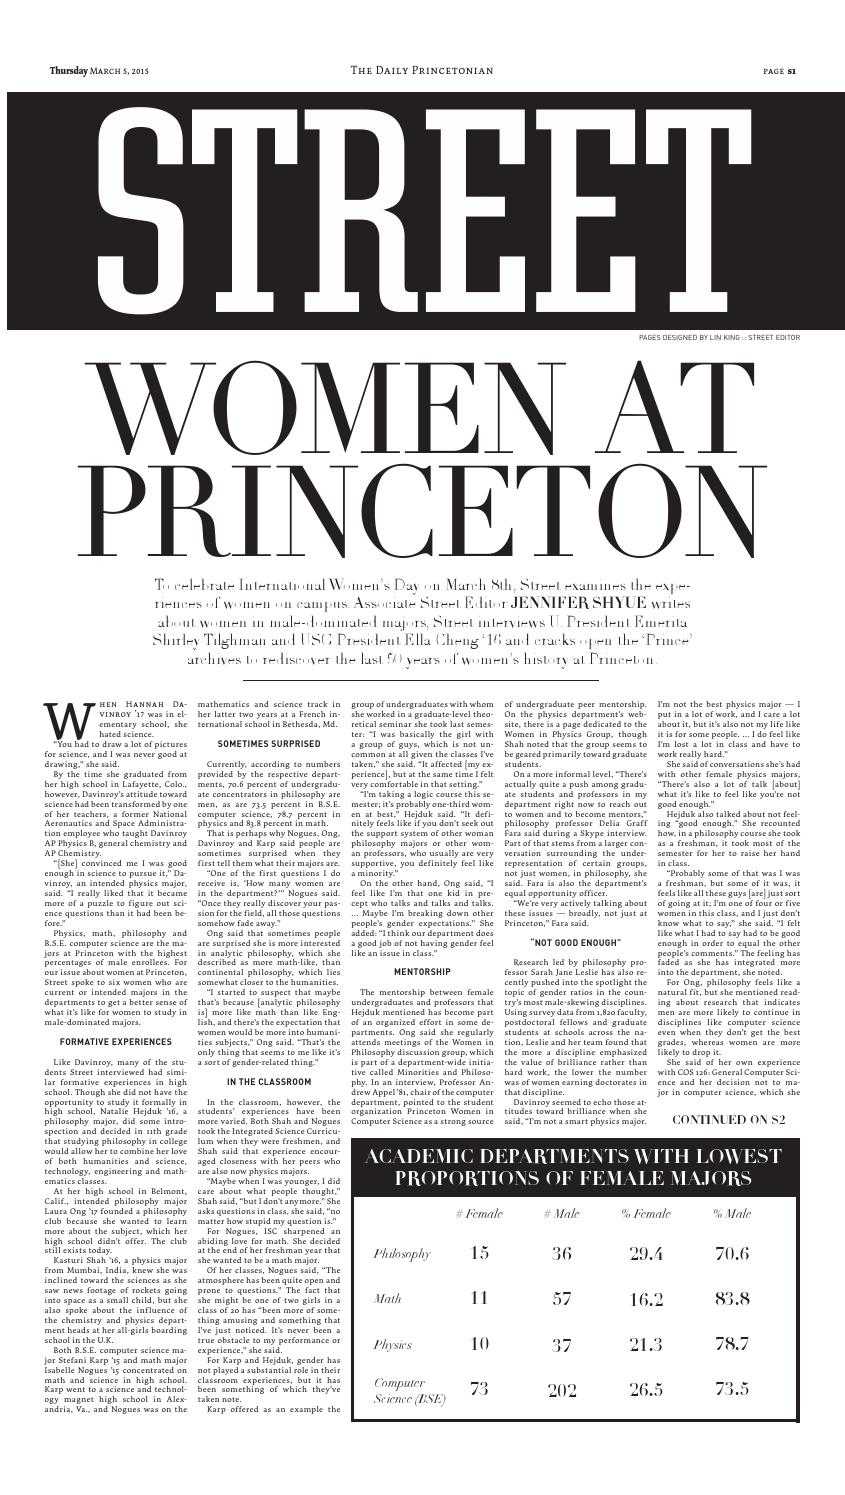 Female students in Princeton University's most male-dominated academic departments in Street section of The Daily Princetonian